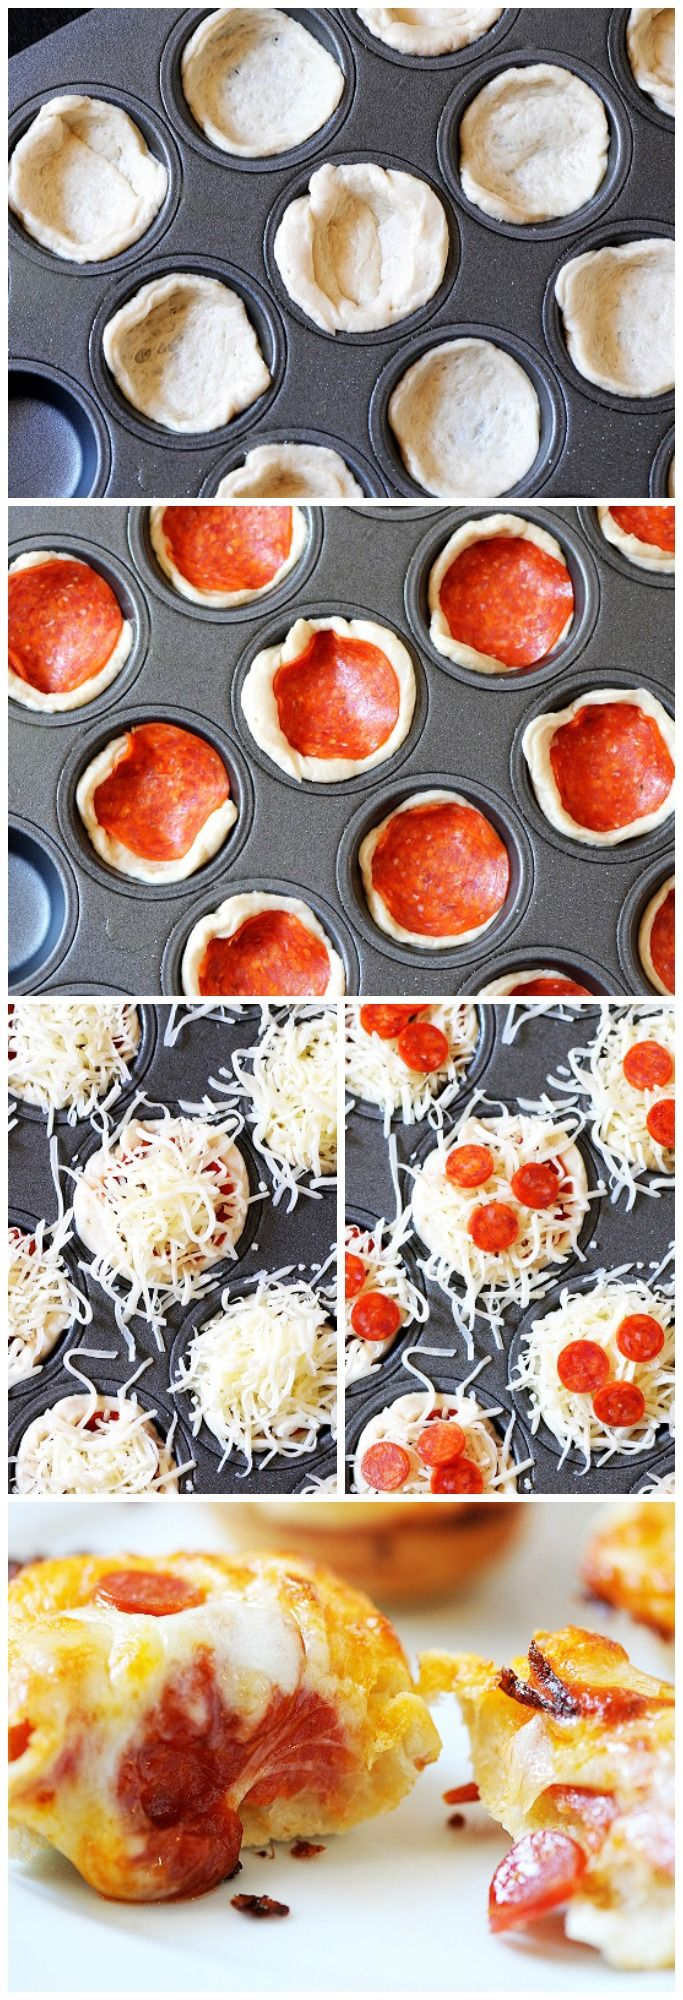 Picnic style finger food - mini deep dish pizzas!